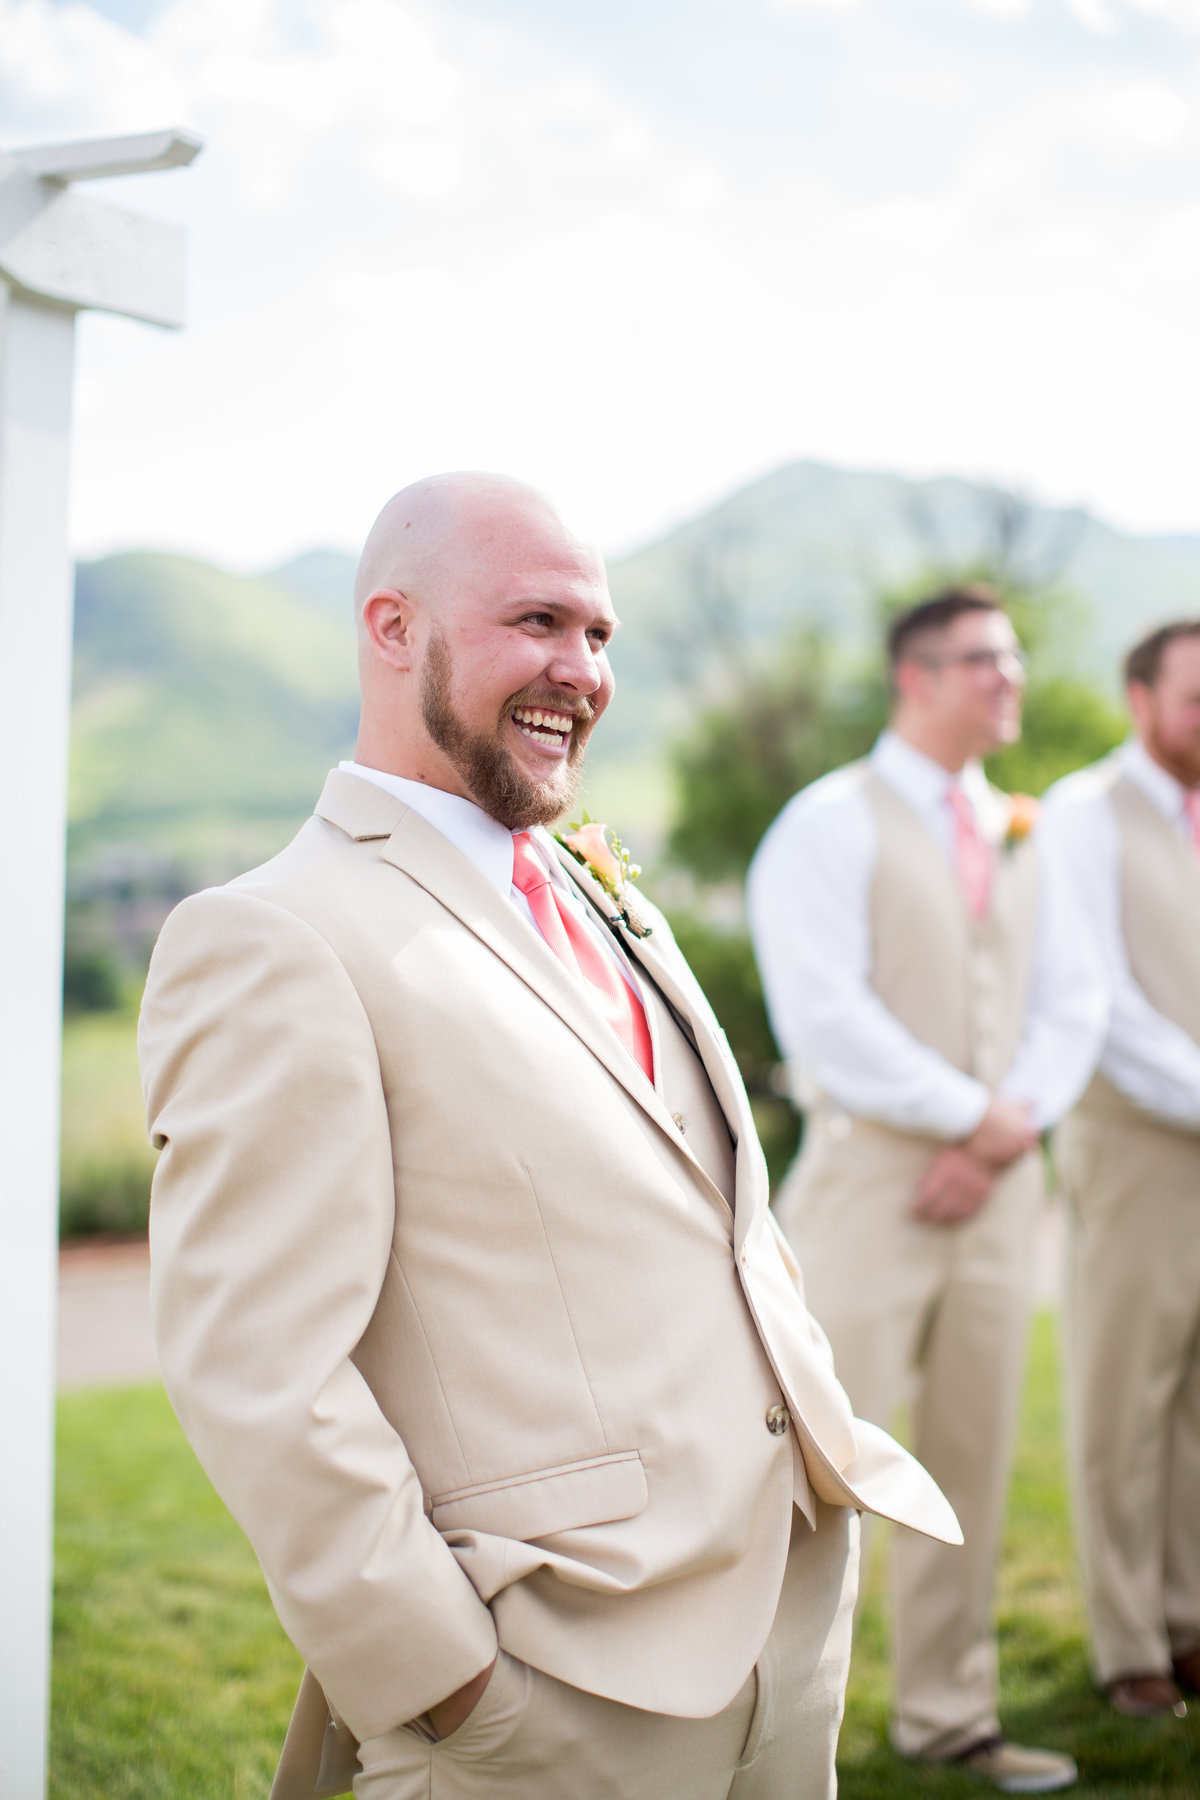 Groom's reaction to his bride walking down the aisle captured by Melissa Sue Photography